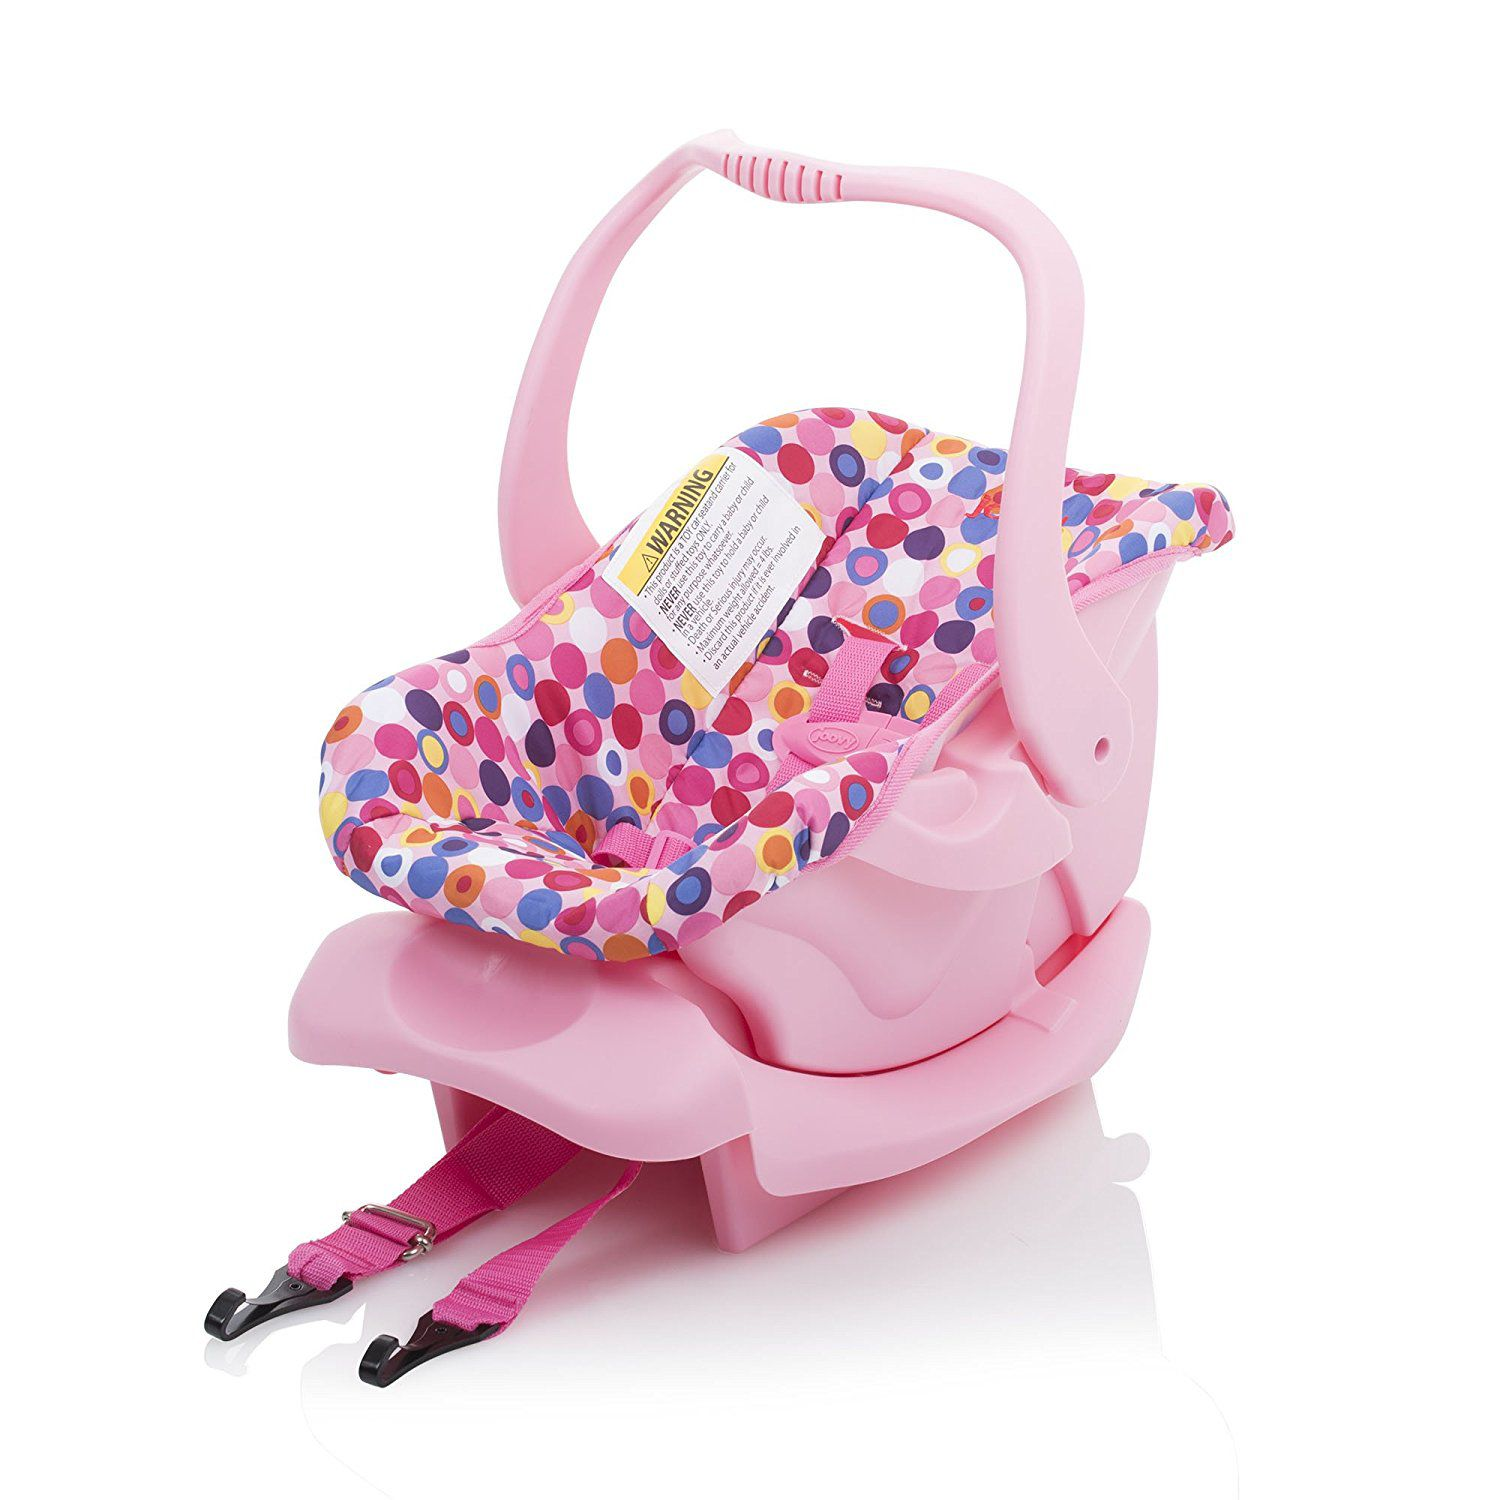 15 Fun Baby Doll Accessories